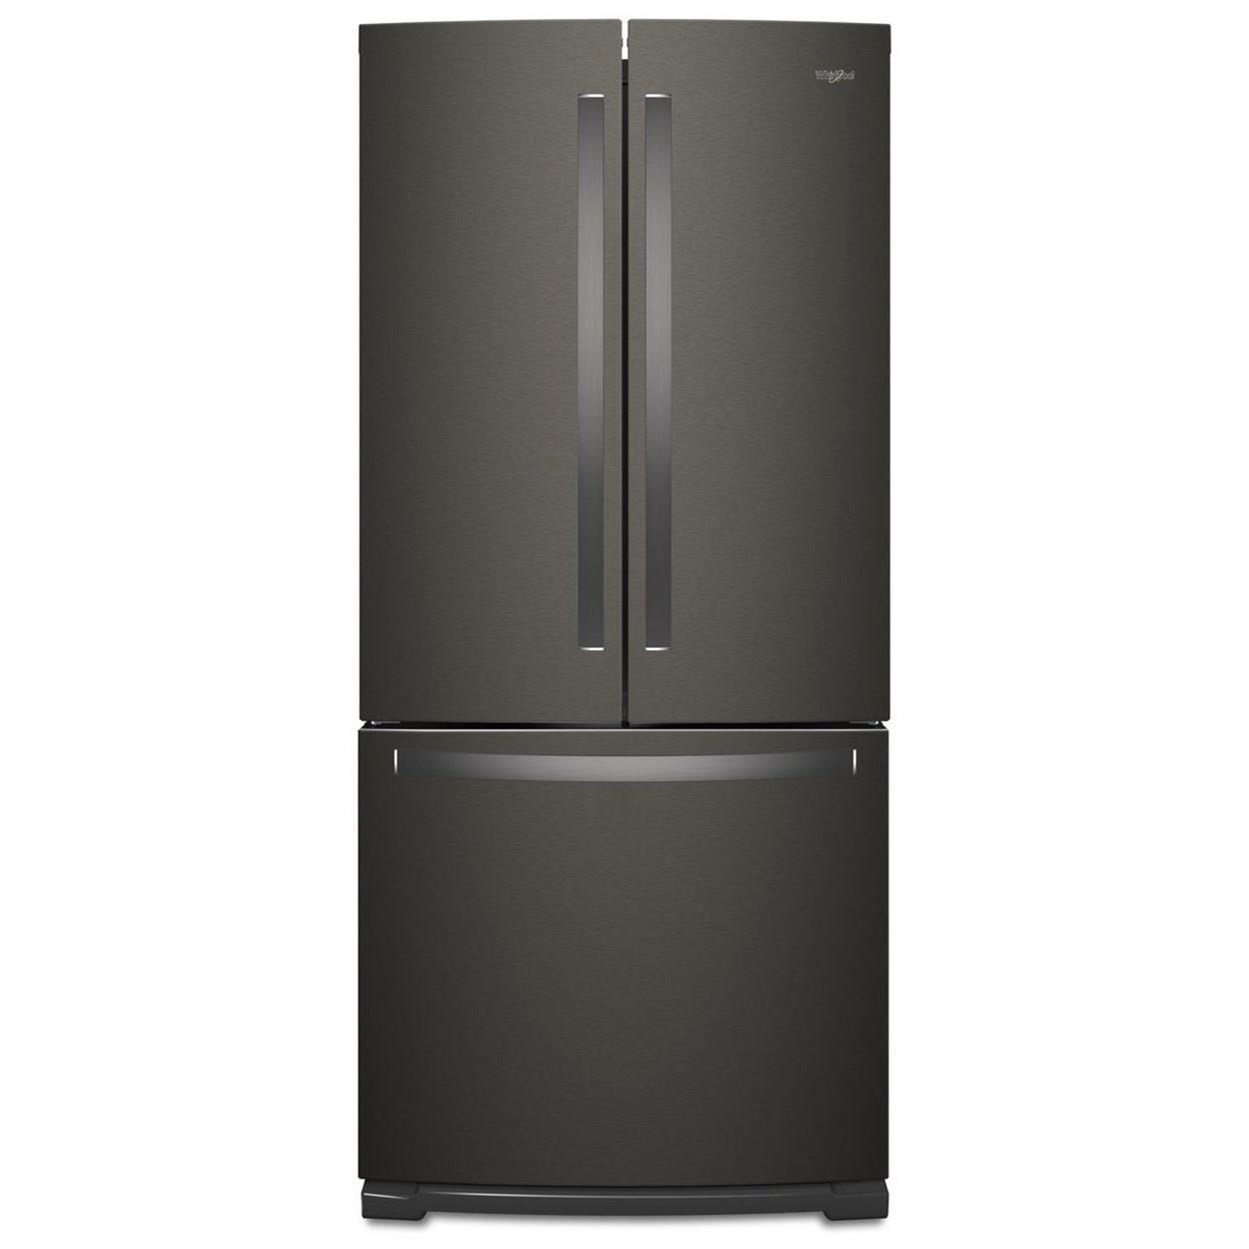 30 inch french door refrigerator. Whirlpool French Door Refrigerators 30-inch Wide Refrigerator - 20 Cu. Ft 30 Inch A